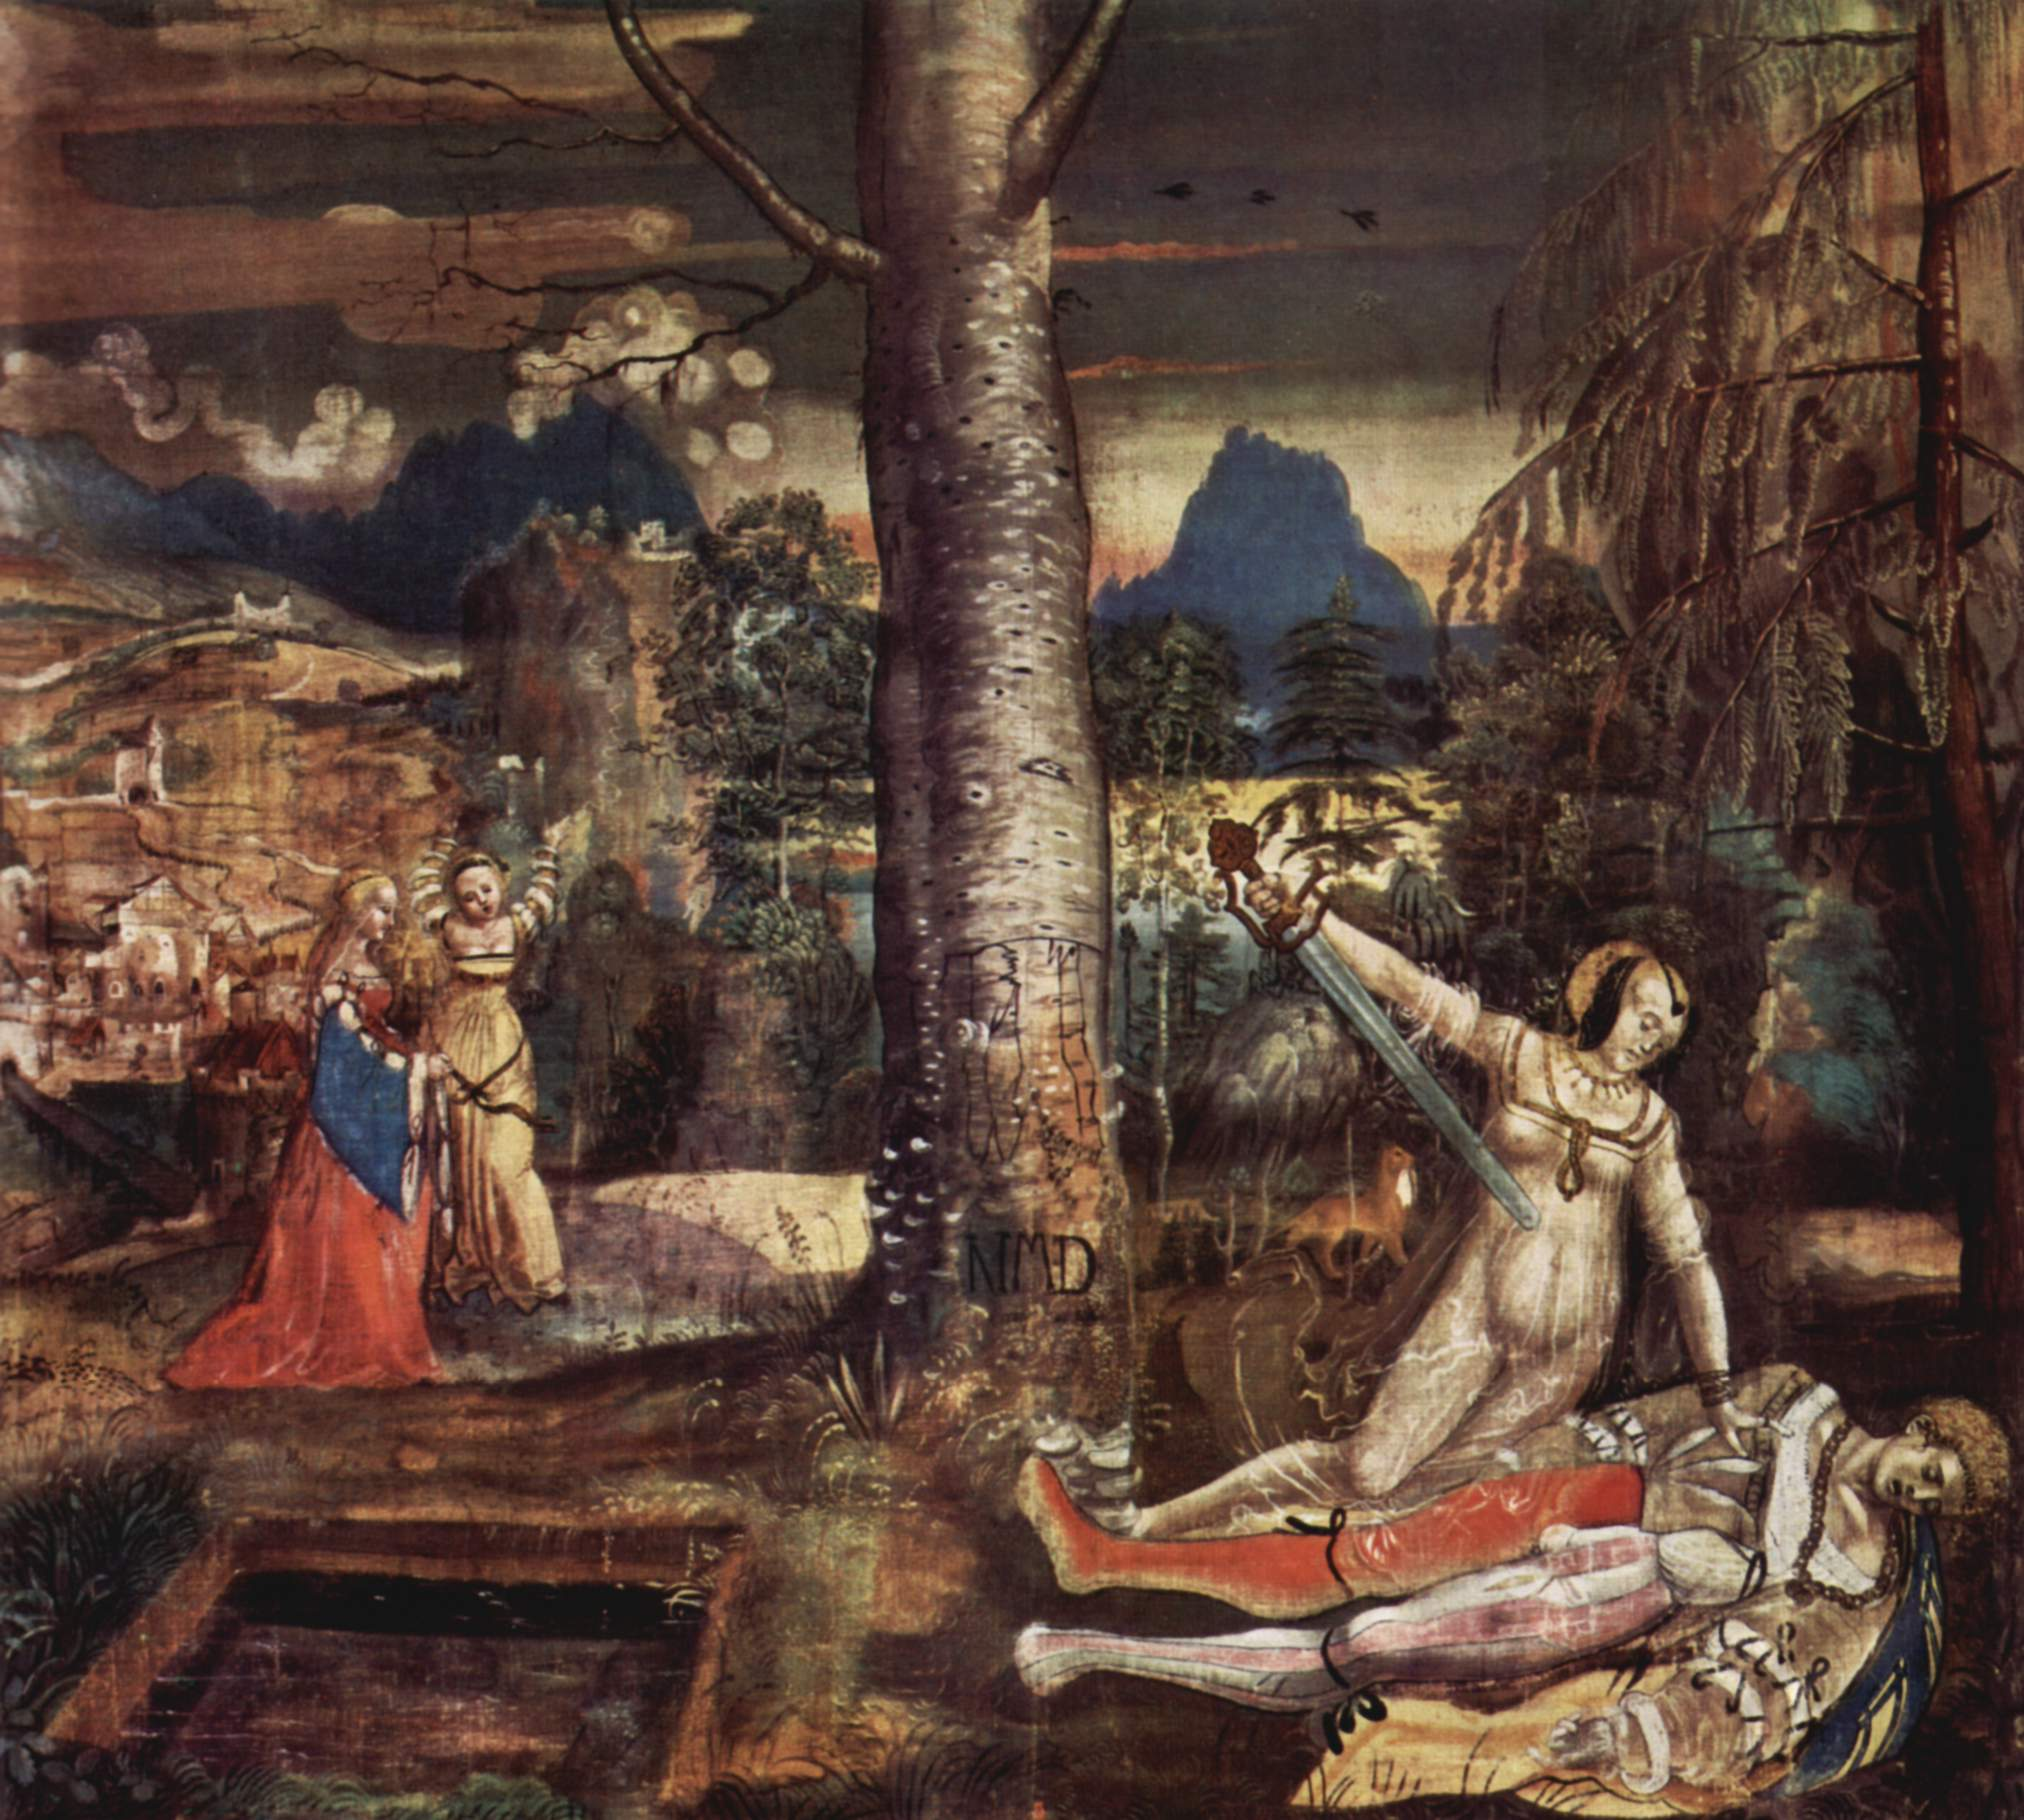 which archetype does the myth of pyramus and thisbe represent